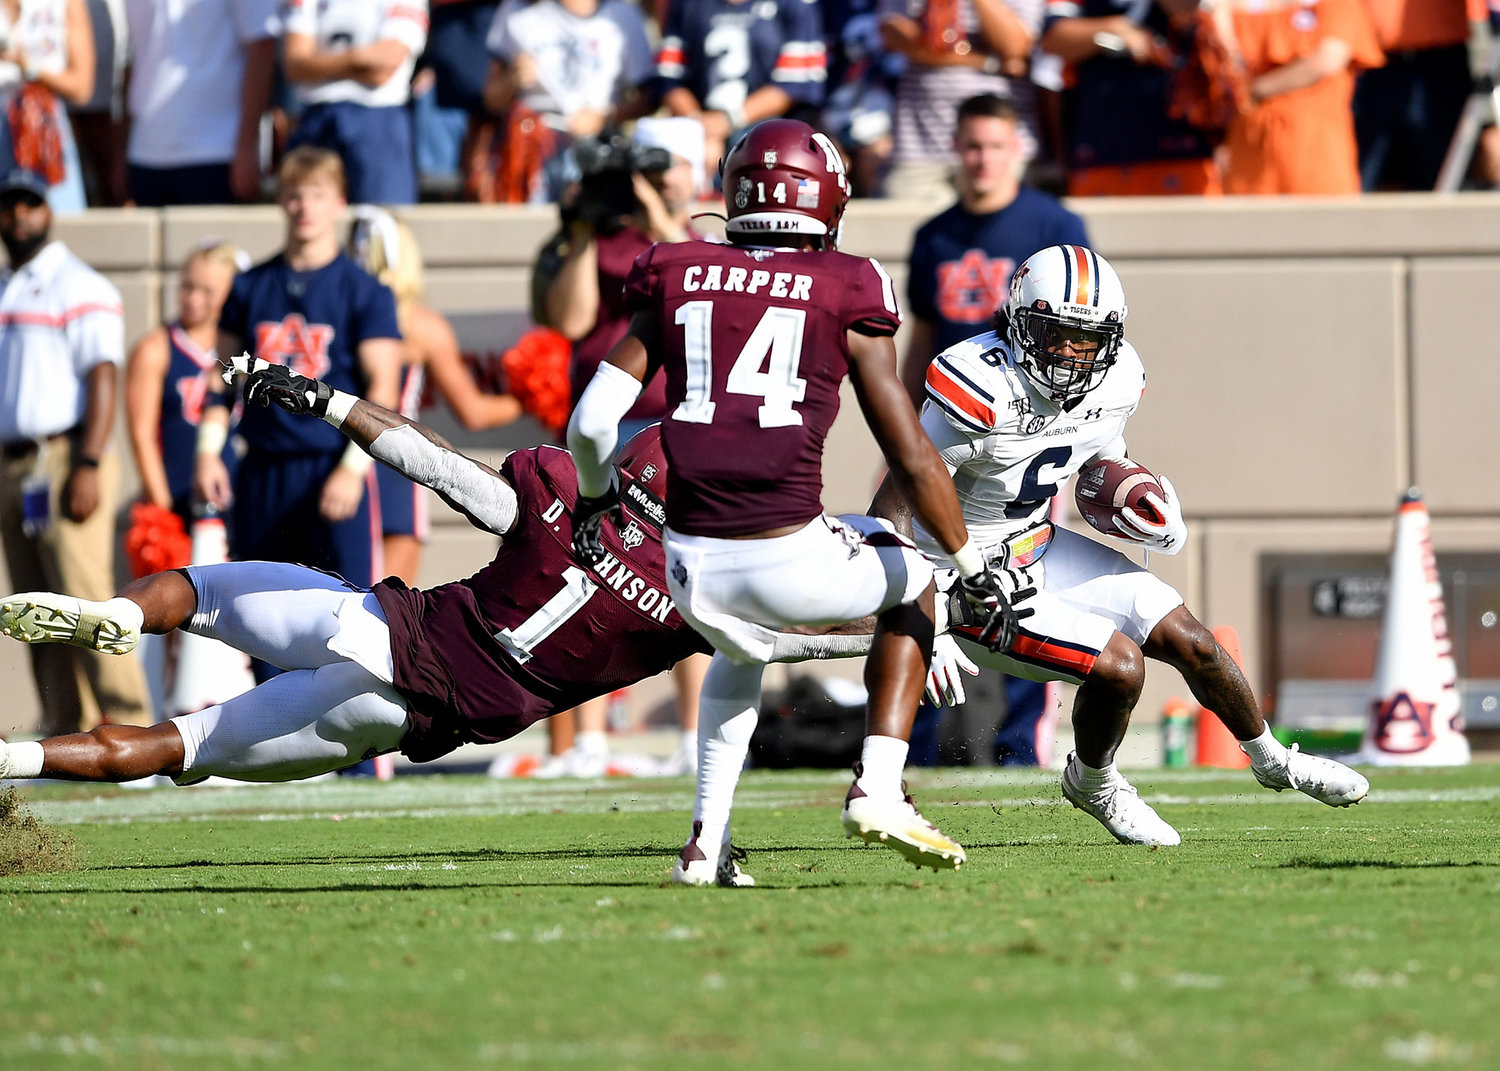 Auburn Tigers wide receiver Ja'Varrius Johnson (6) looks for room to run during the second half of an NCAA football game between the Texas A&M Aggies and the Tigers Saturday, Sept. 21, 2019, at Kyle Field in College Station Texas. Auburn wins 28-20.